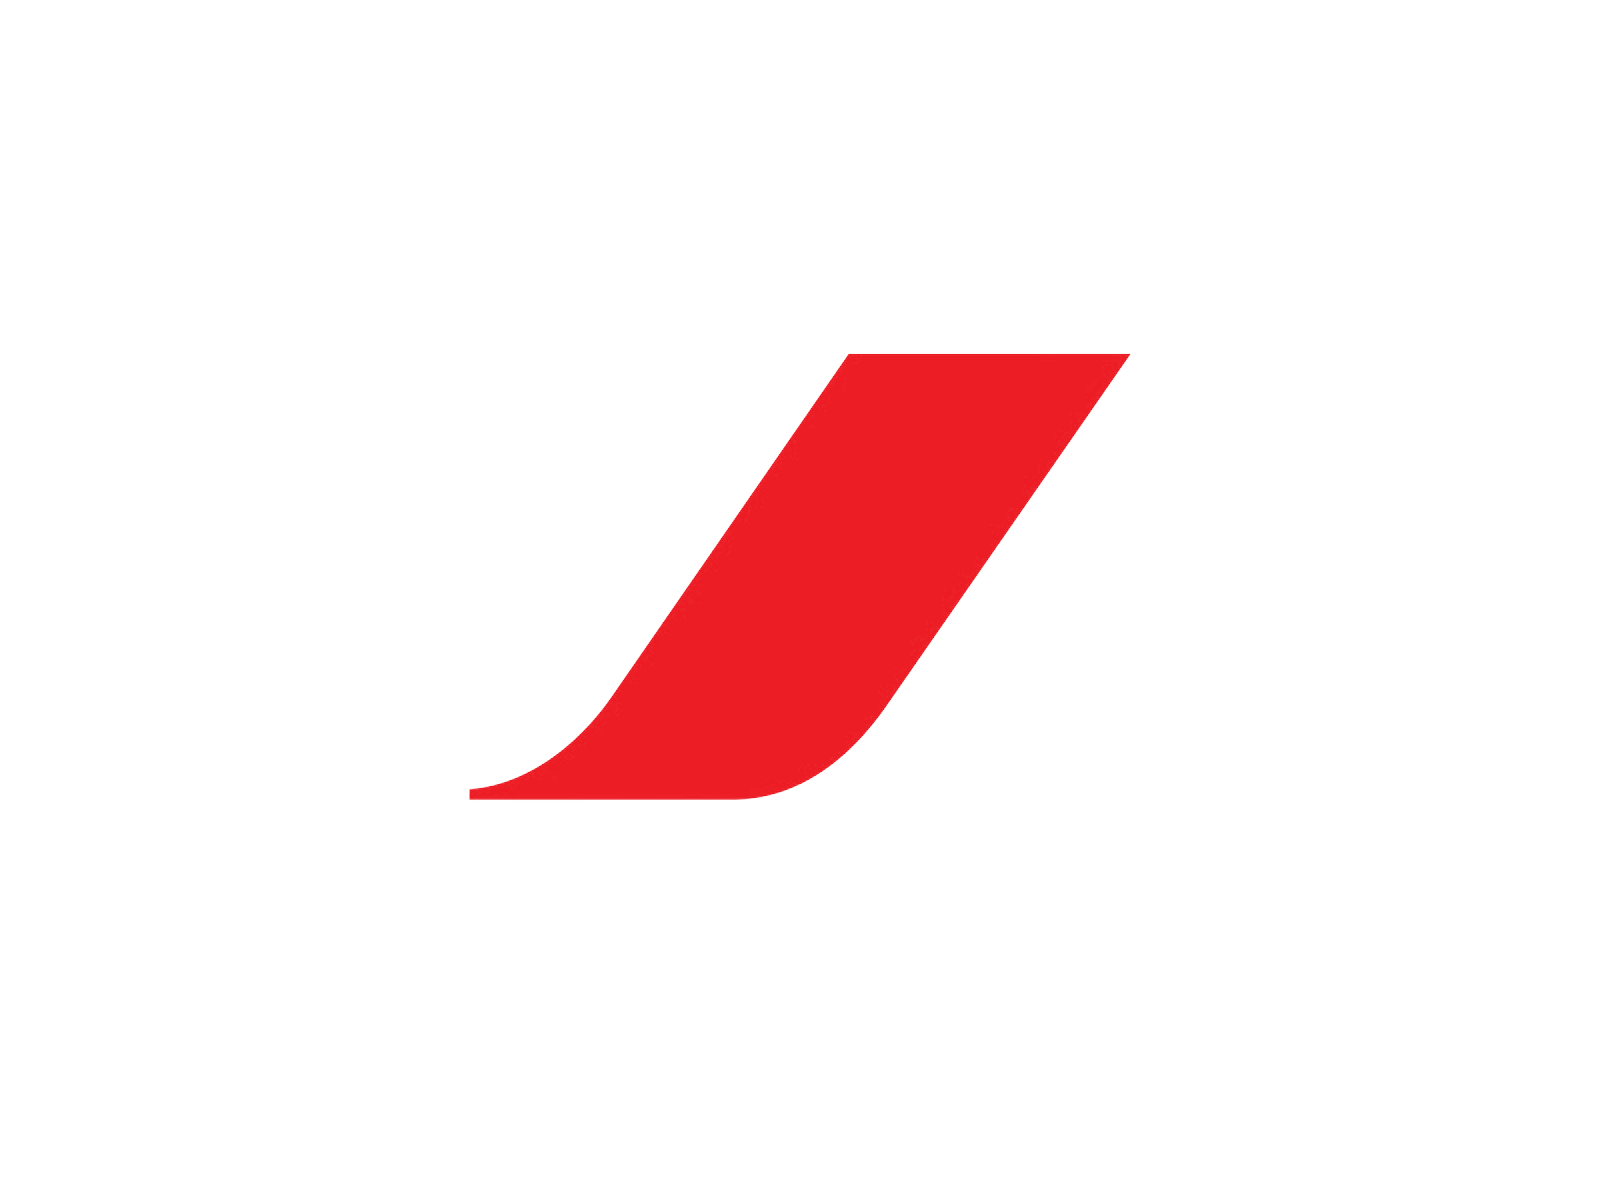 Air France Logo - Air France logo | Logok